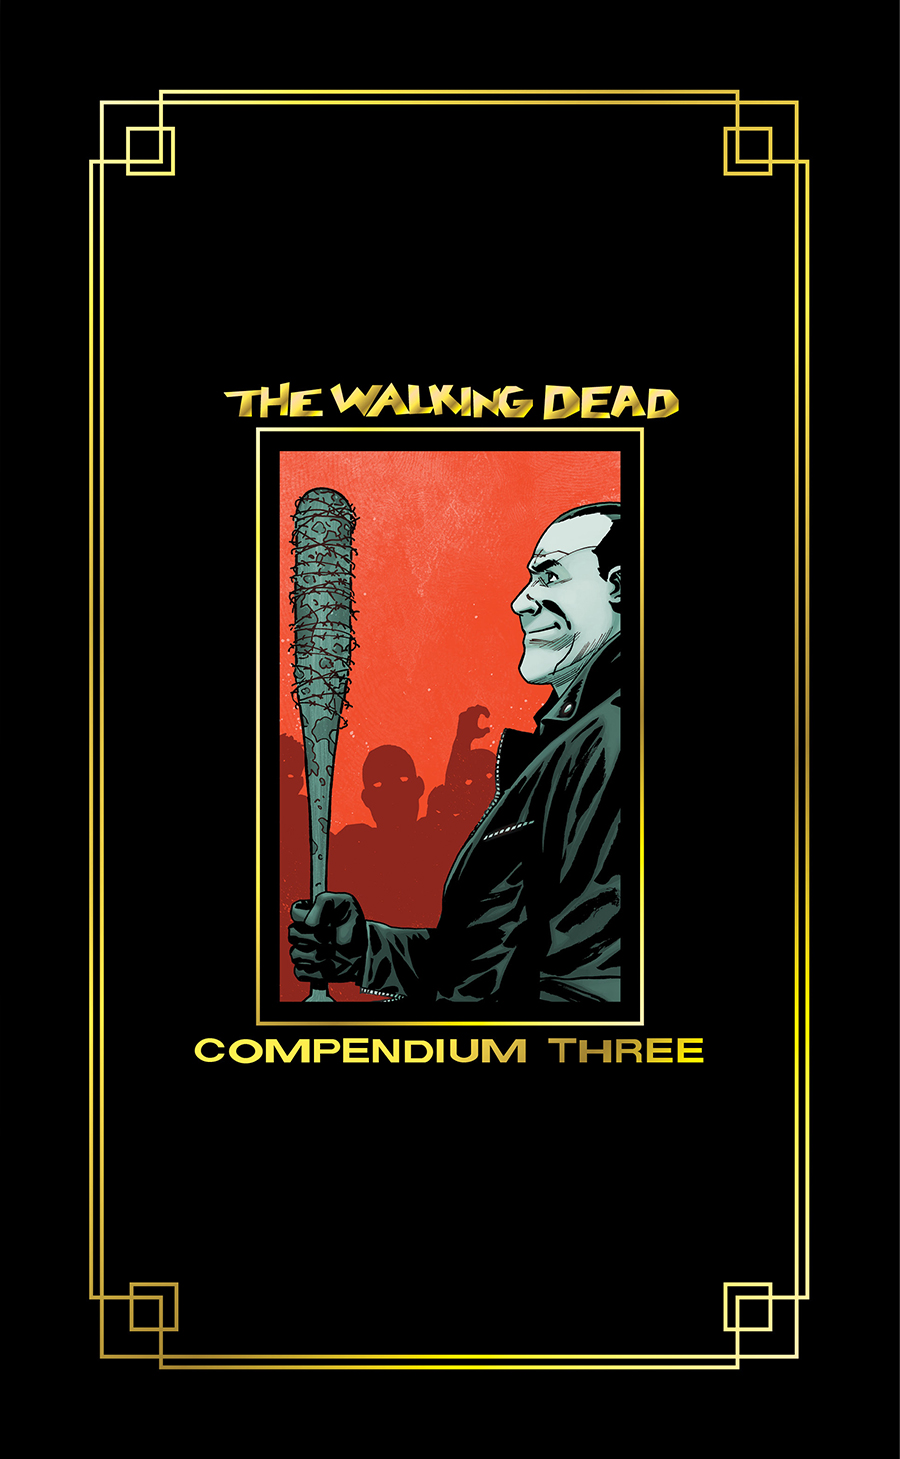 the-walking-dead-compendium-3-hardcover-comic-con-san-diego-2016-001